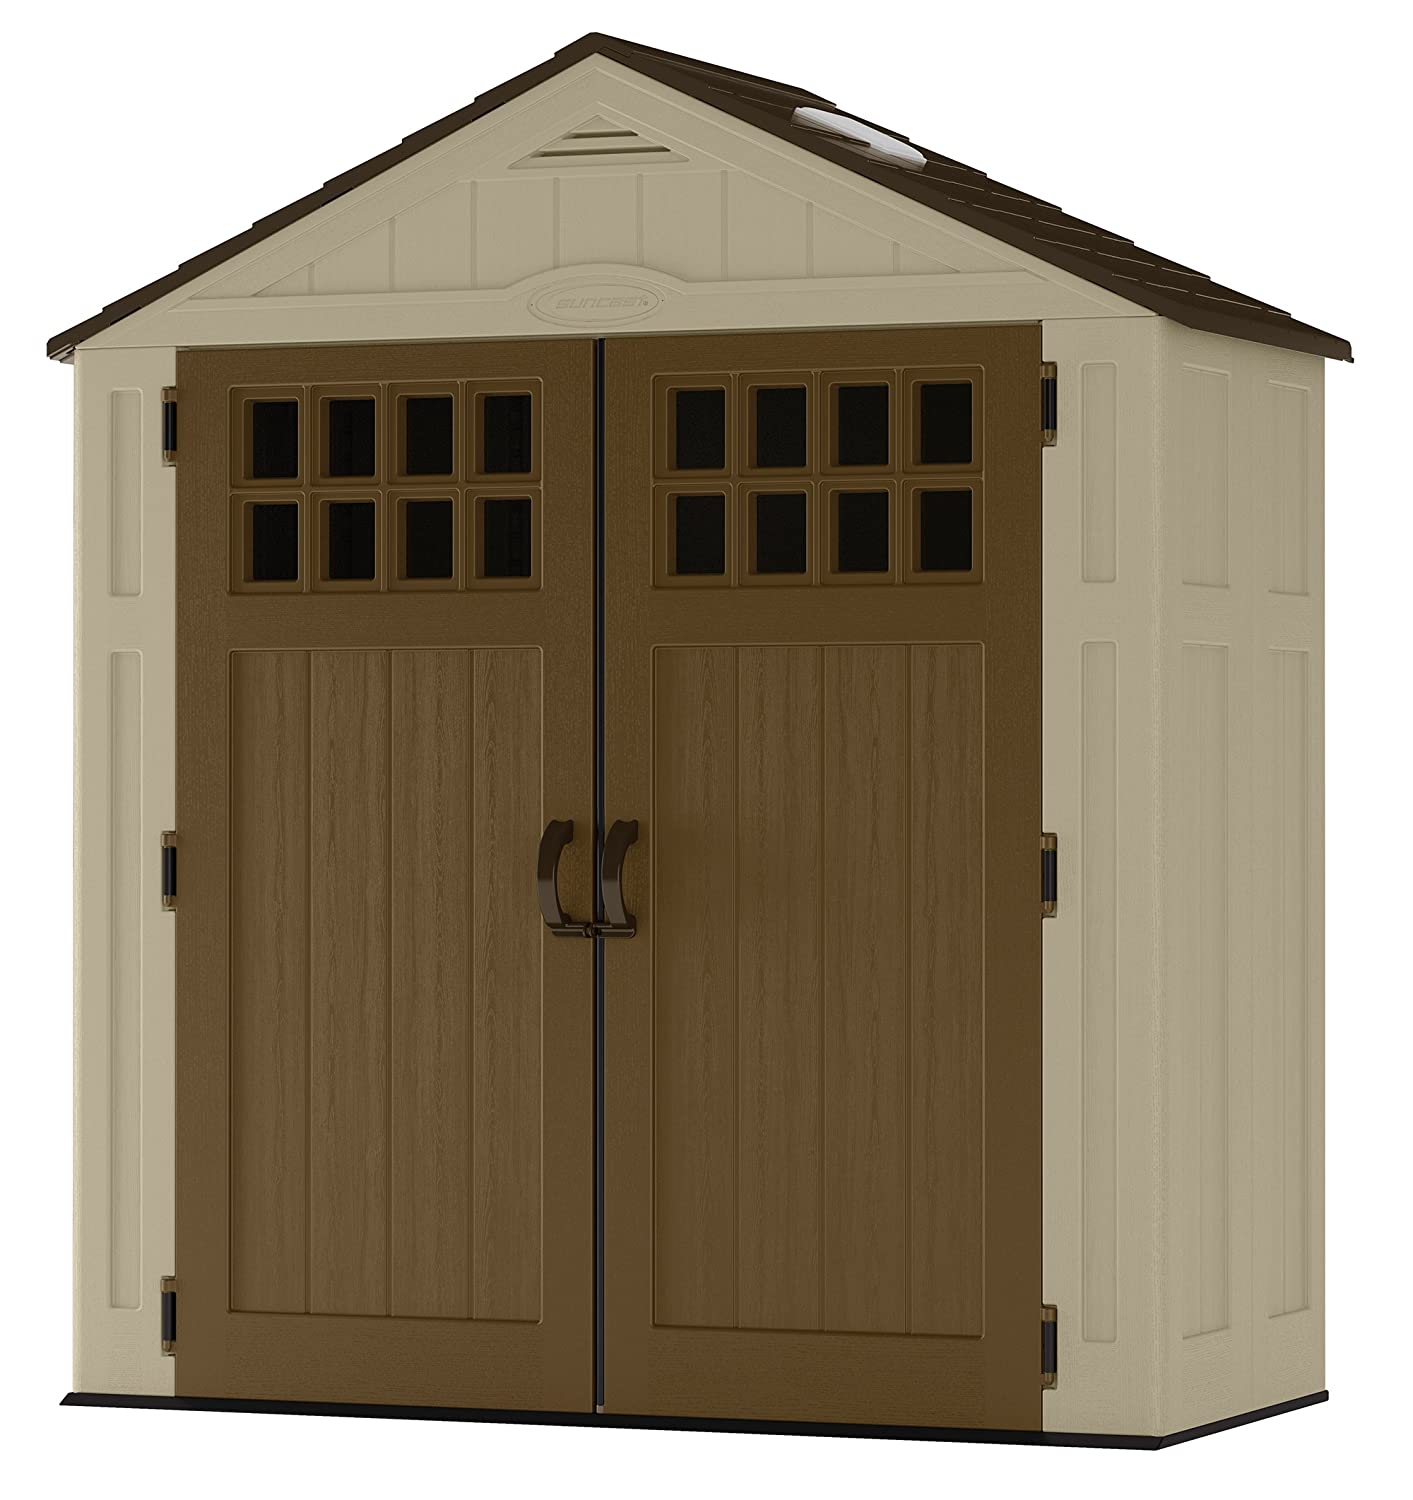 insitu and storage asp category shed cheap shop sheds